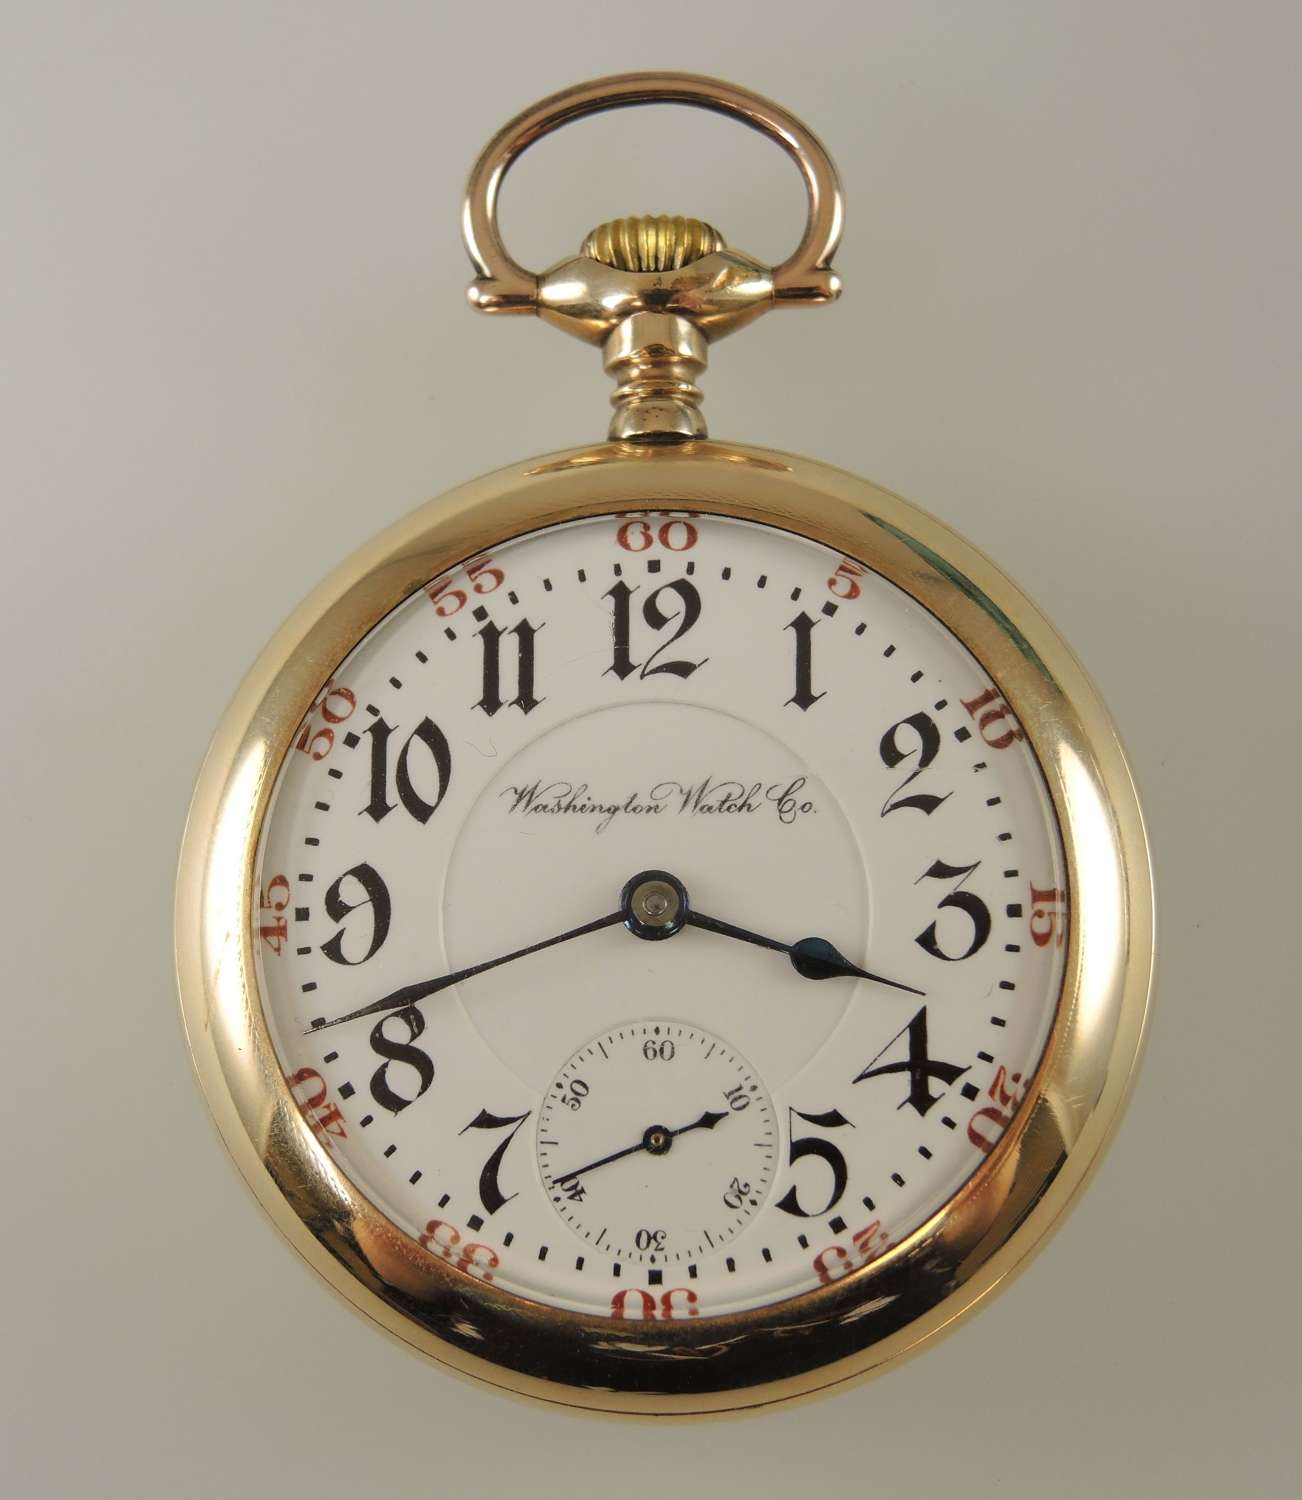 18s 21J Illinois Washington Watch Co pocket watch c1912